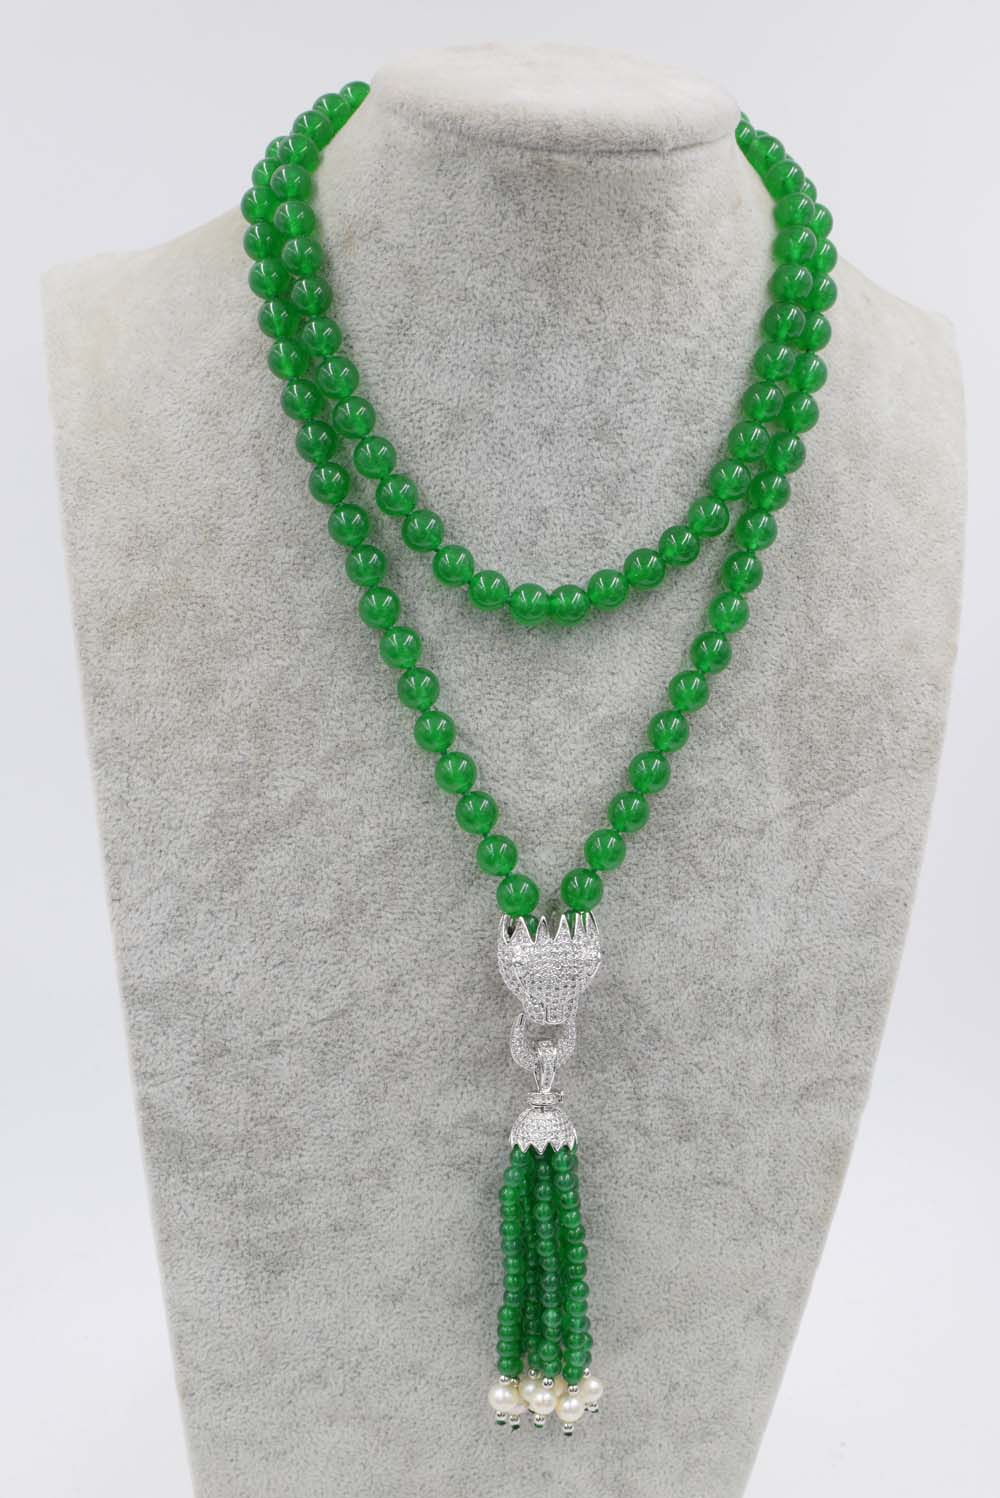 green jade round 8mm and white pearl near round leopard clasp necklace 33inch wholesale beads nature gift discount FPPJ